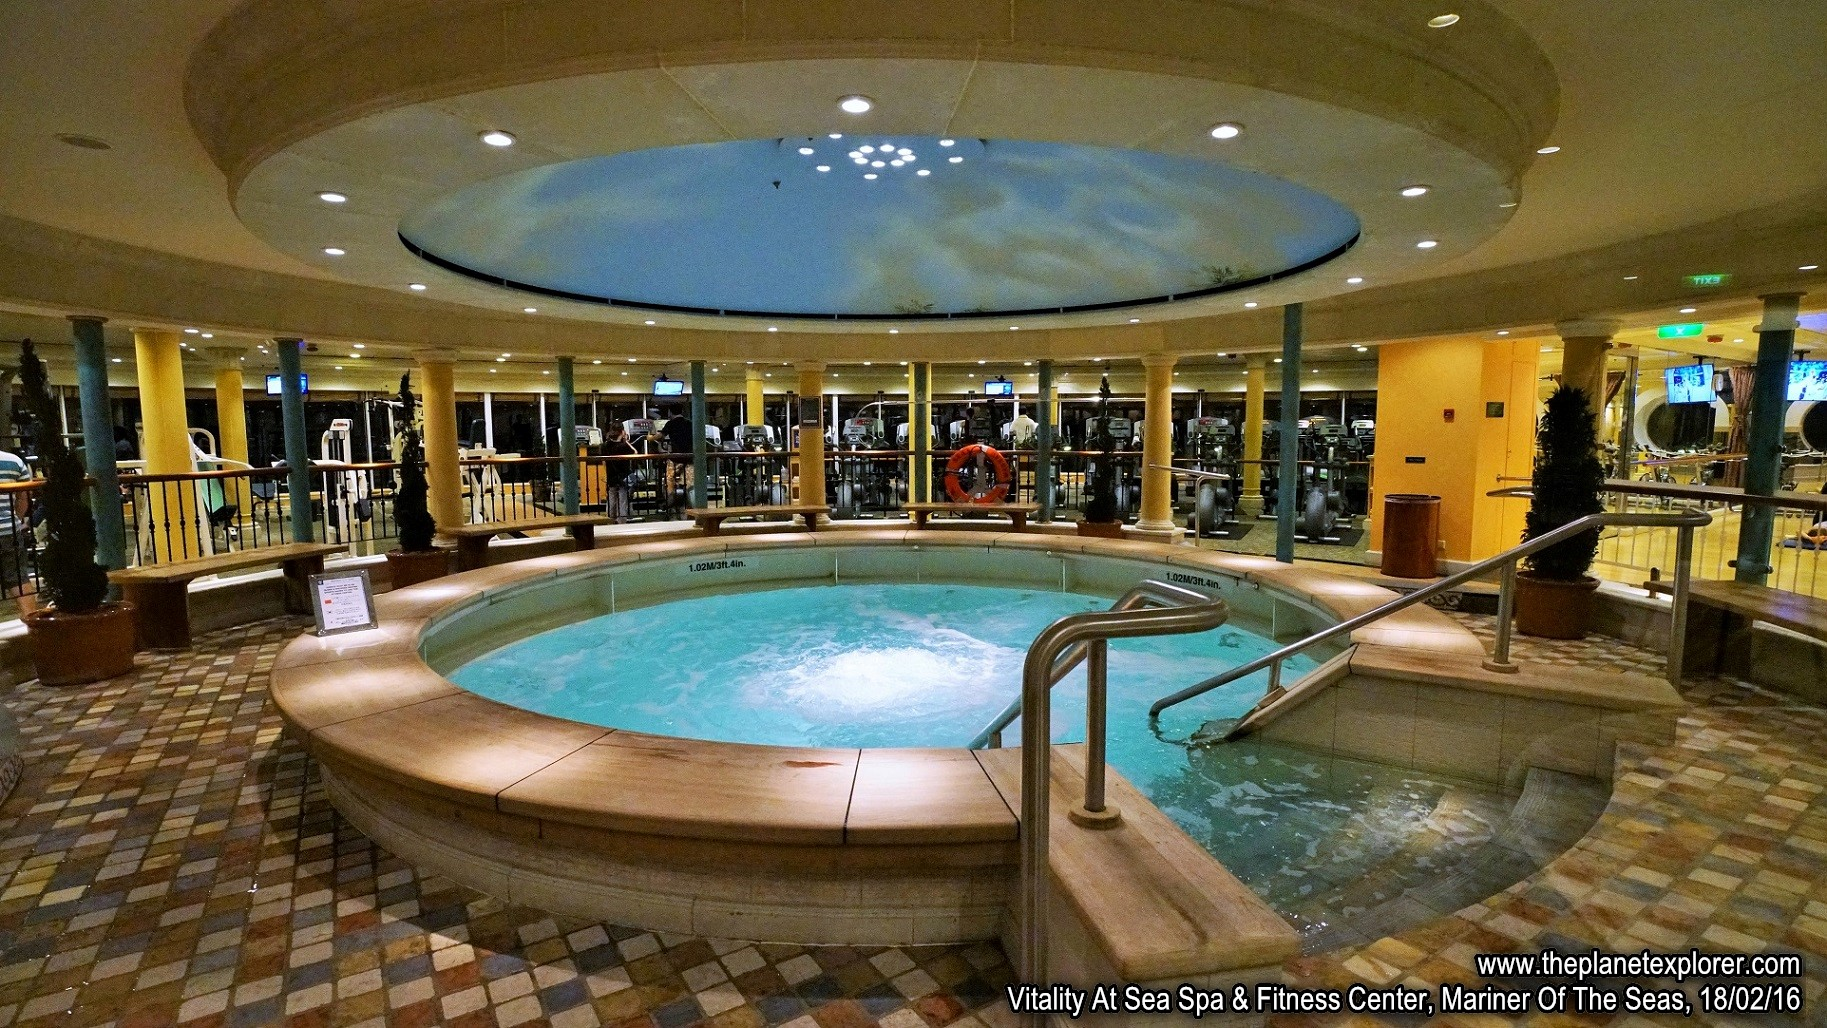 Mariner Of The Seas Feb 2016 The Planet Explorer : 2016 02 182230Mariner Of The SeasVitality At Sea Spa Fitness CenterDSC04927s7R2LRwww from www.theplanetexplorer.com size 1827 x 1028 jpeg 637kB